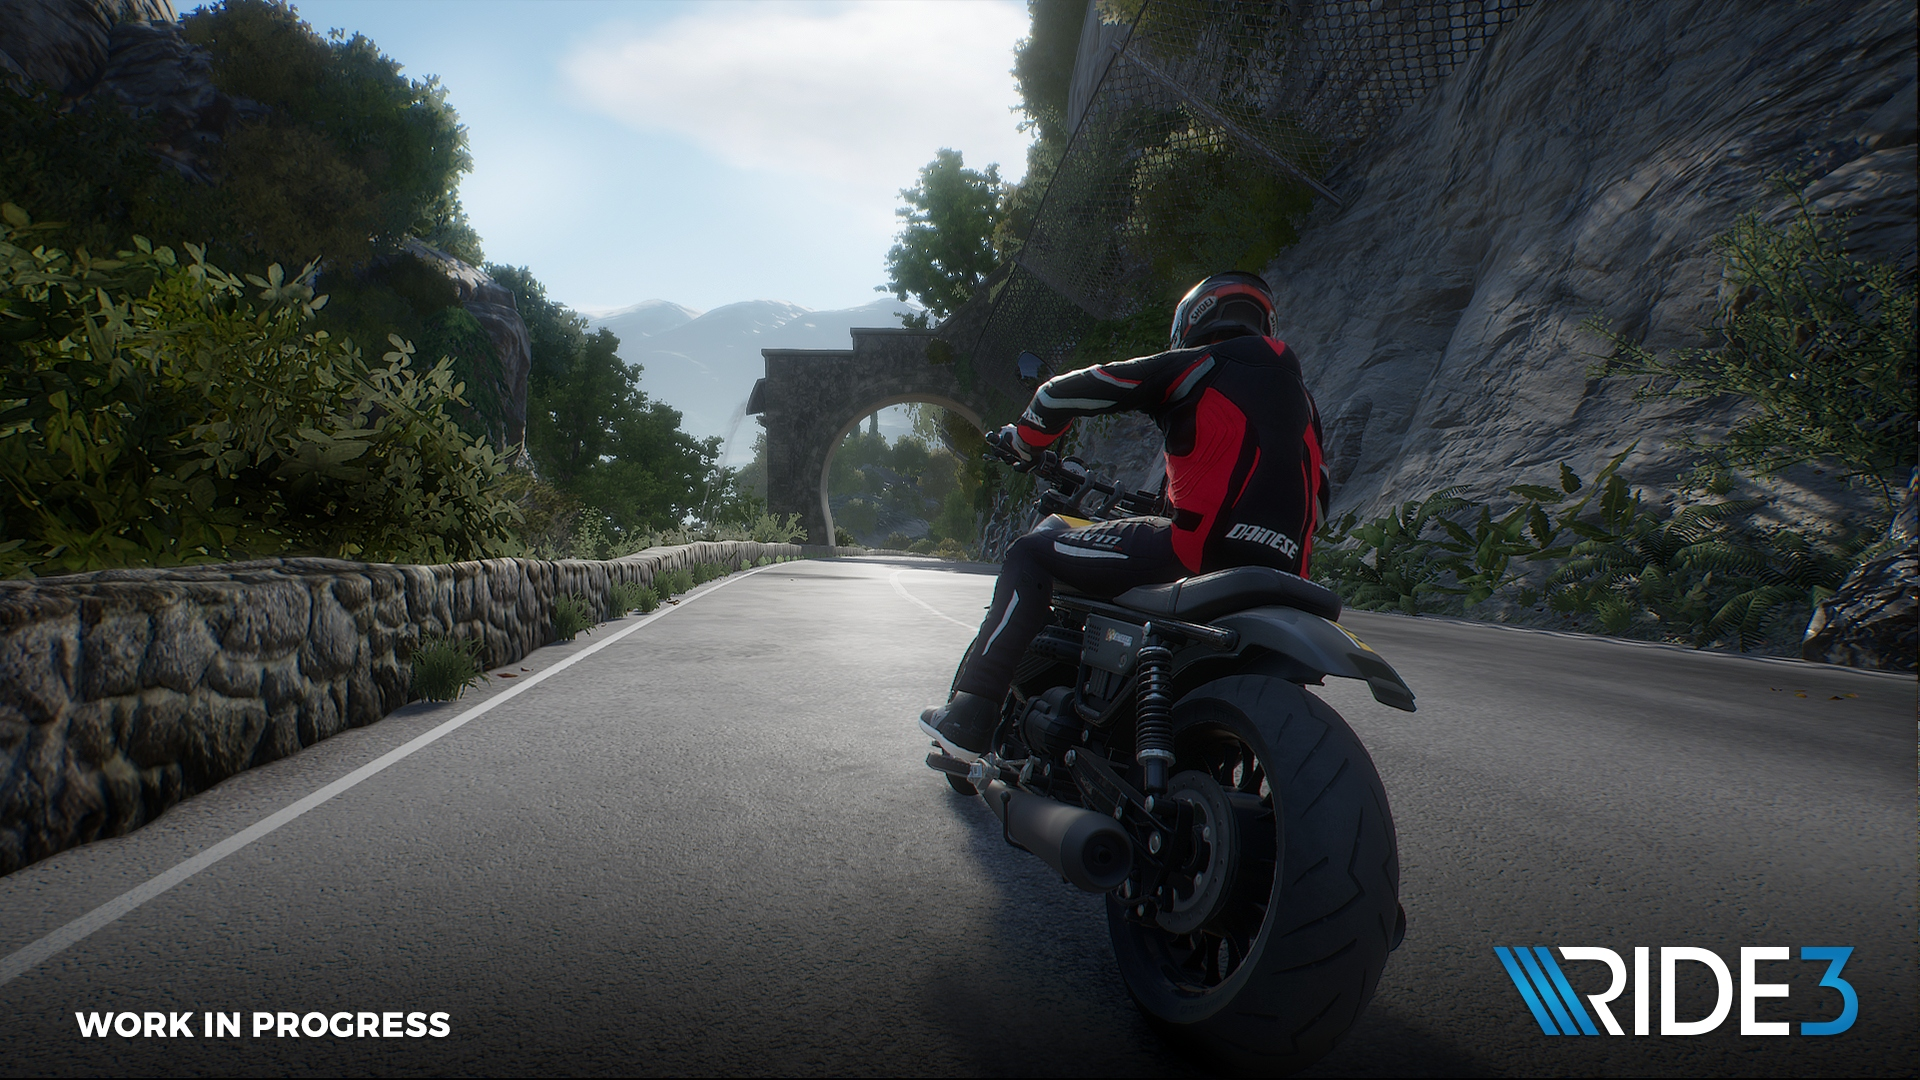 RIDE 3 Hands-On Preview - A Bikers Paradise?